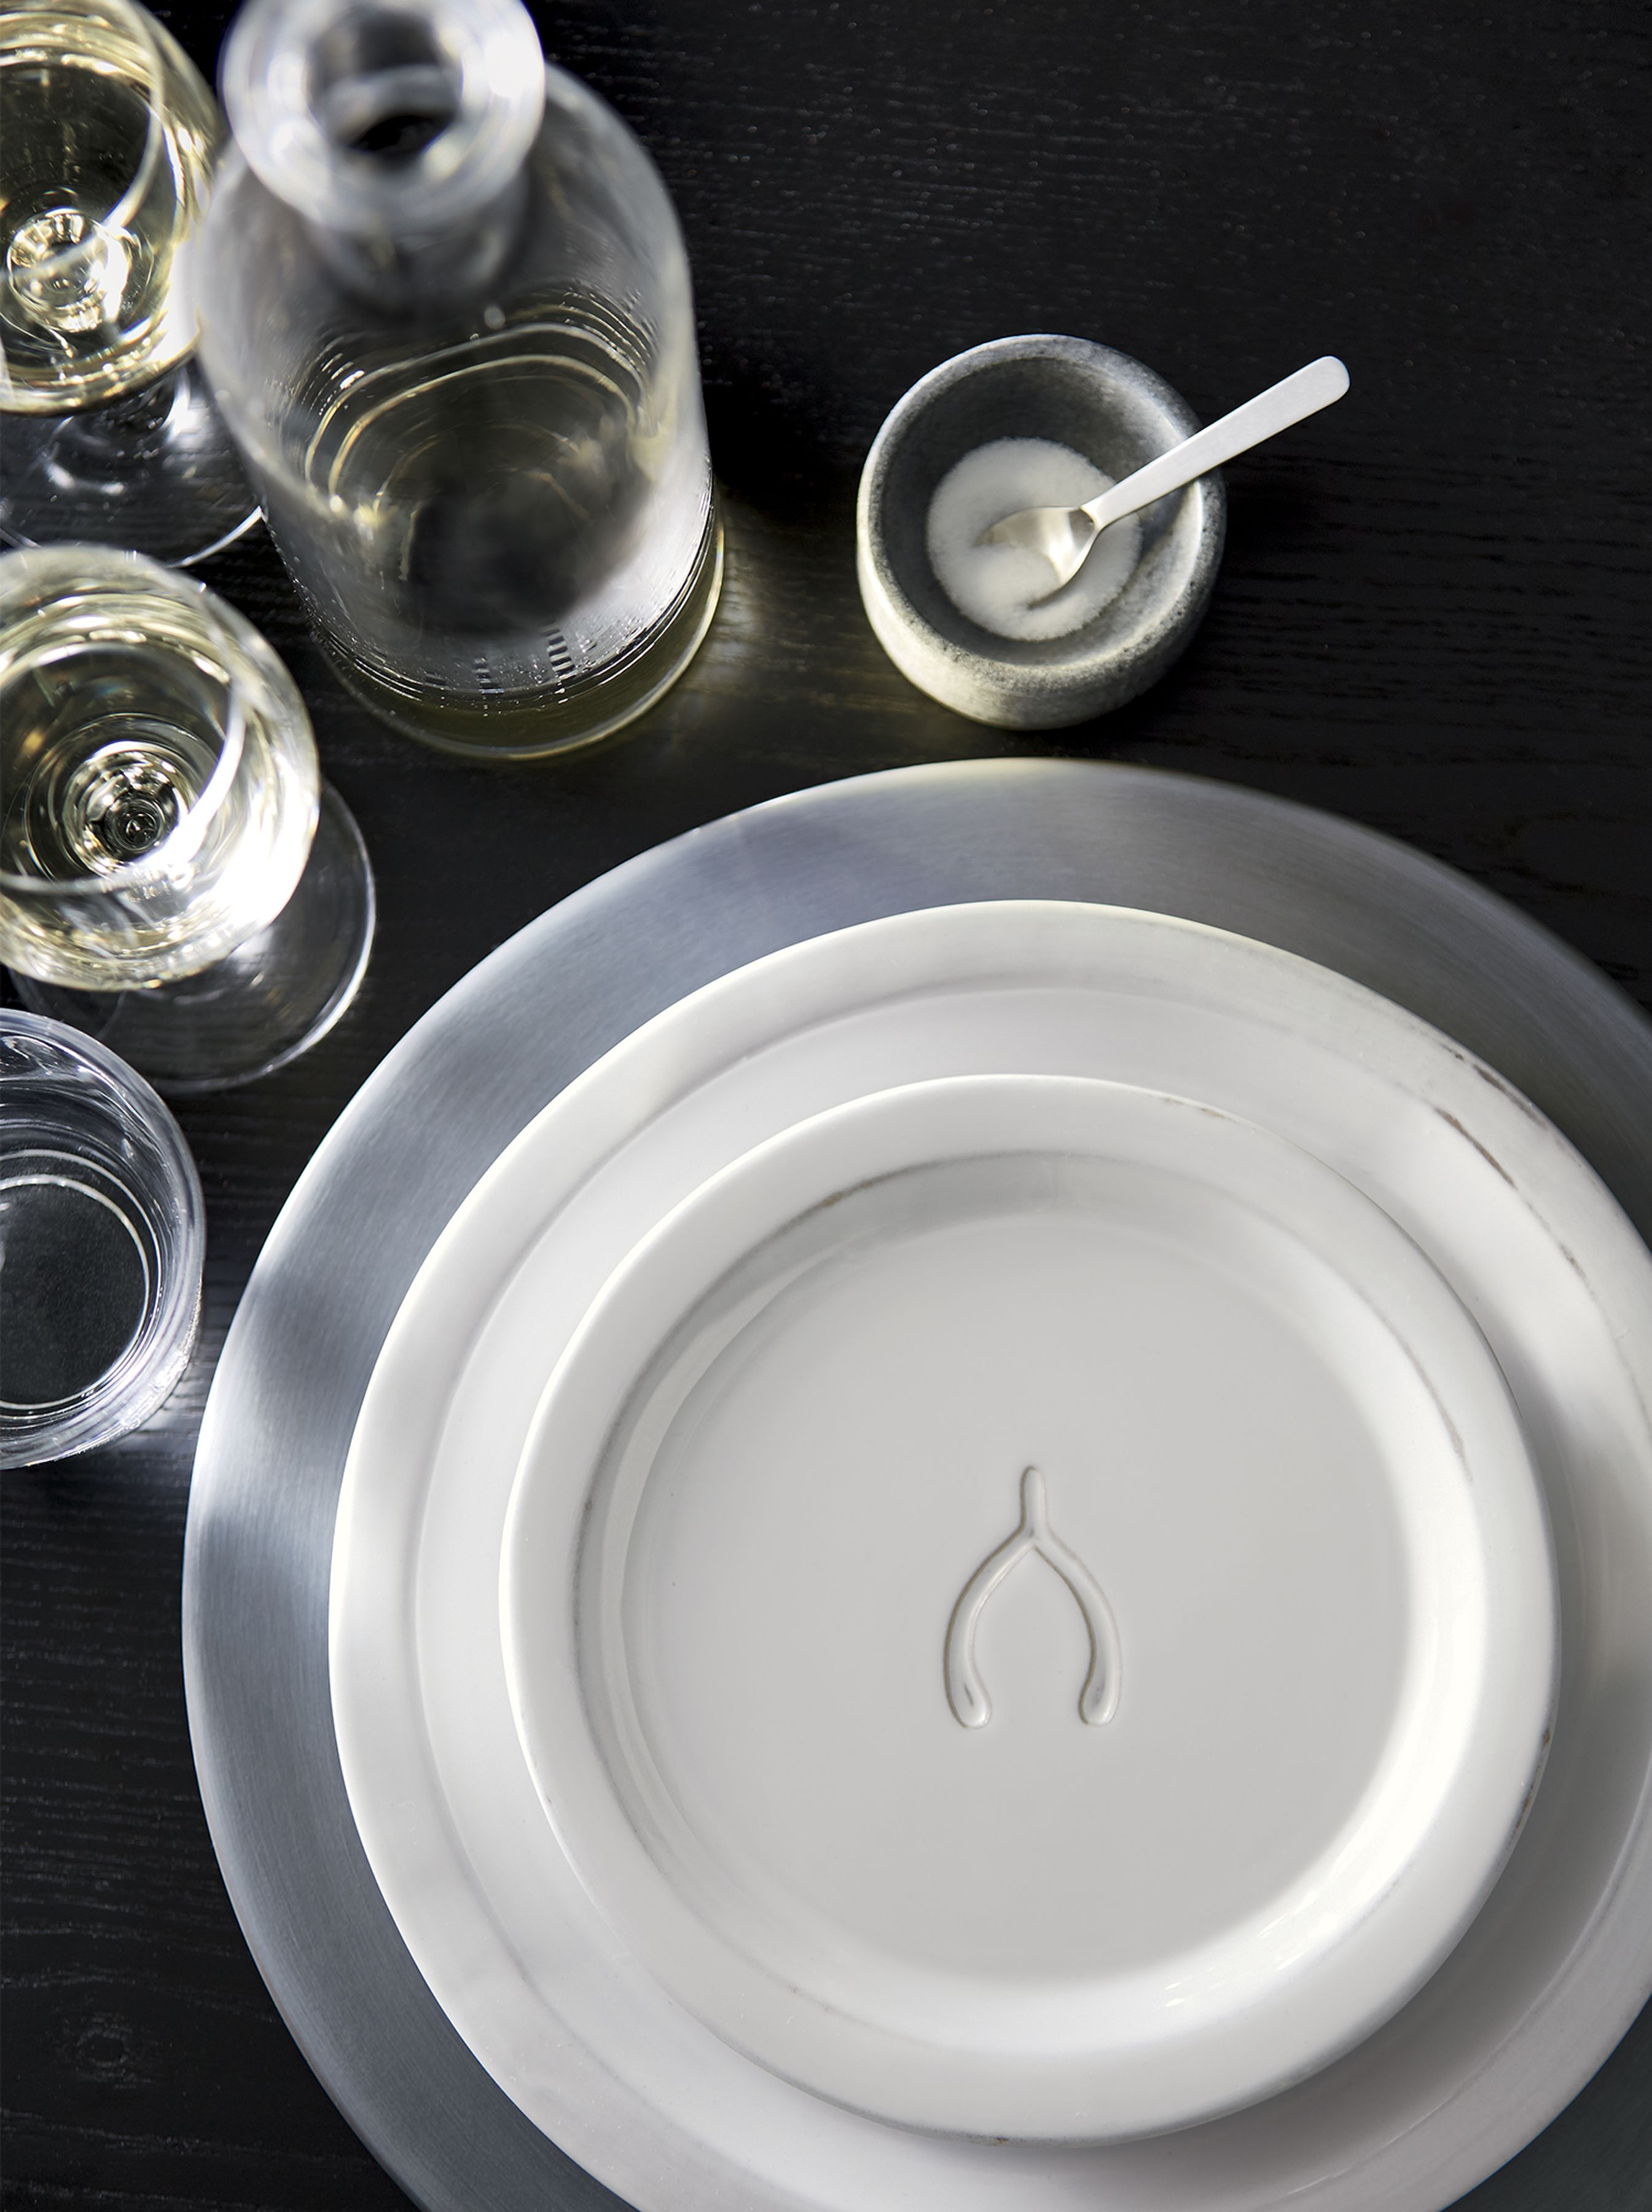 This whimsical accent piece with an embossed wishbone icon lends Thanksgiving appeal to our Marbury dinnerware & This whimsical accent piece with an embossed wishbone icon lends ...